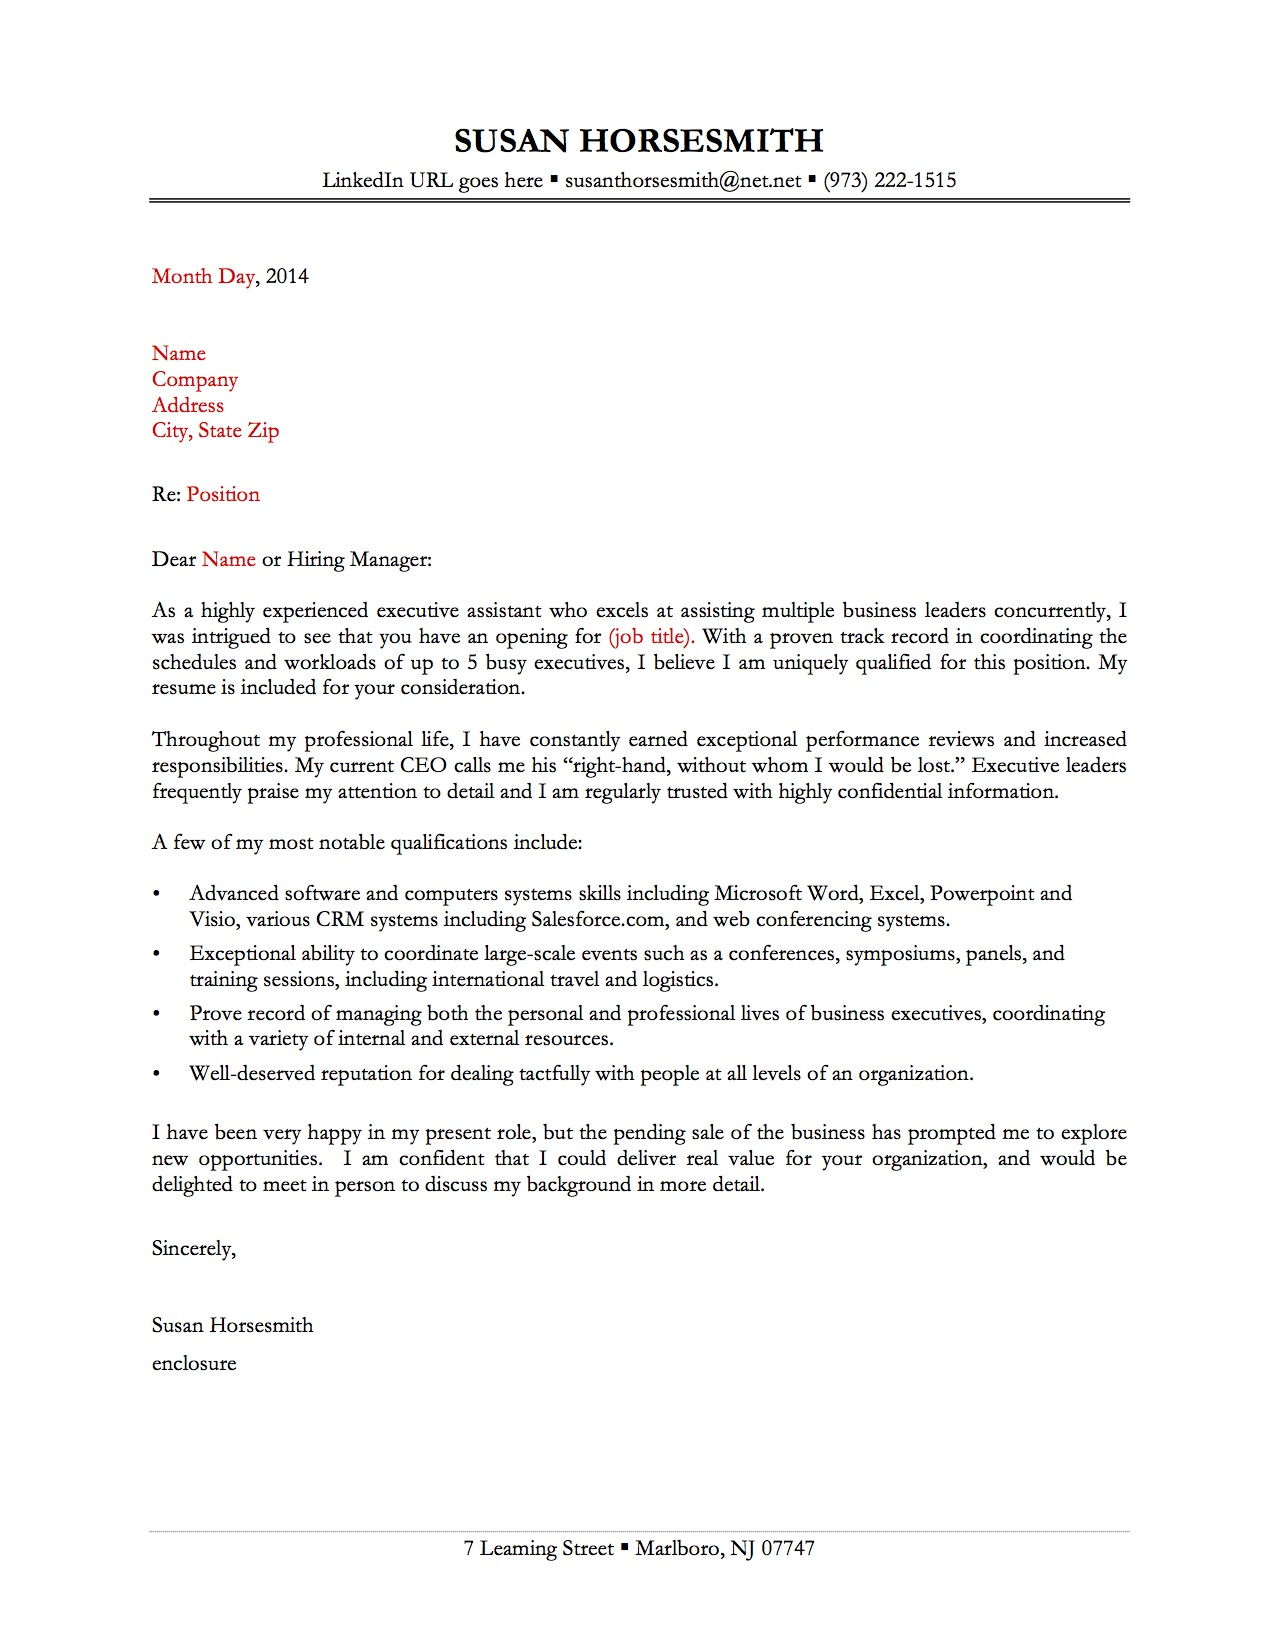 sample cover letter 1 - What Is Cover Letter Example